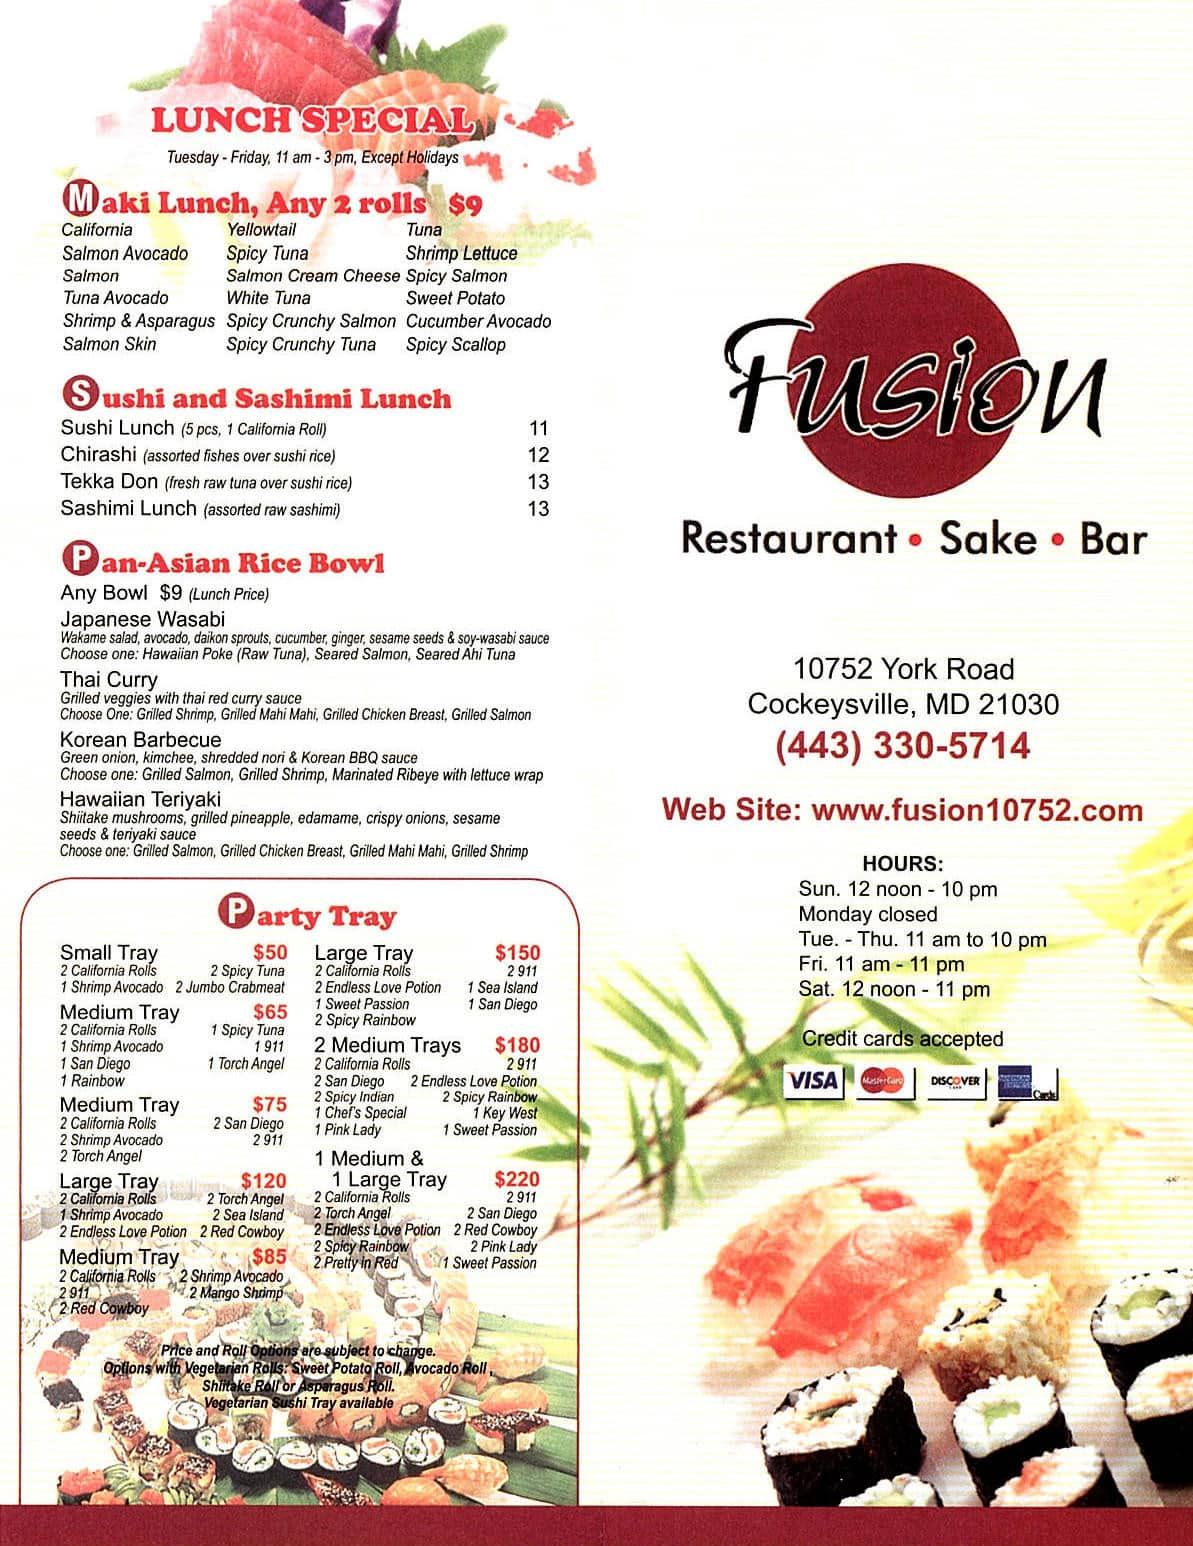 Asian Restaurants In Cockeysville Md